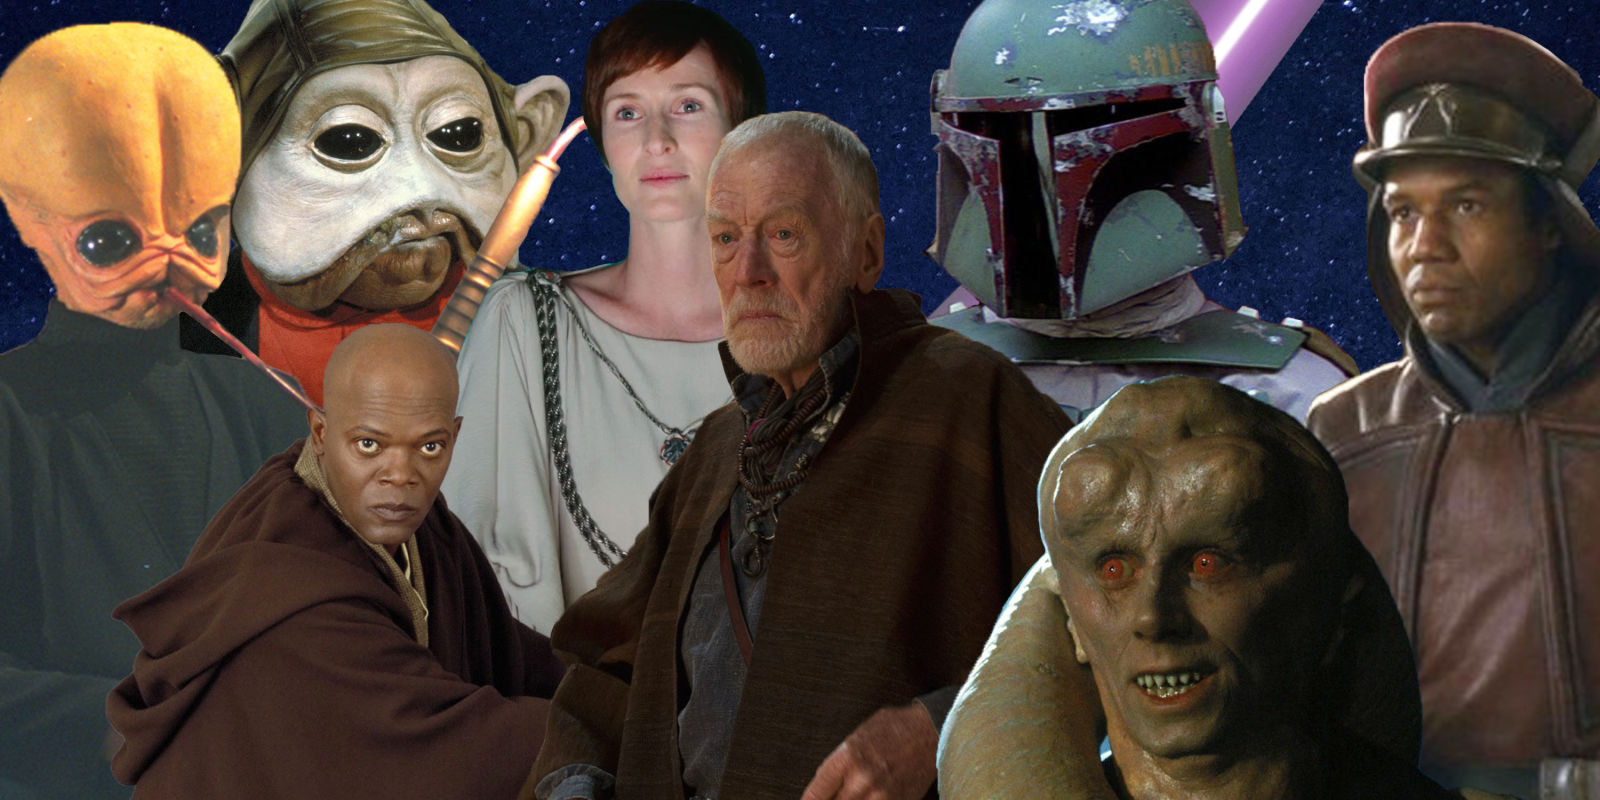 Star Wars character names we were expected to just *know*